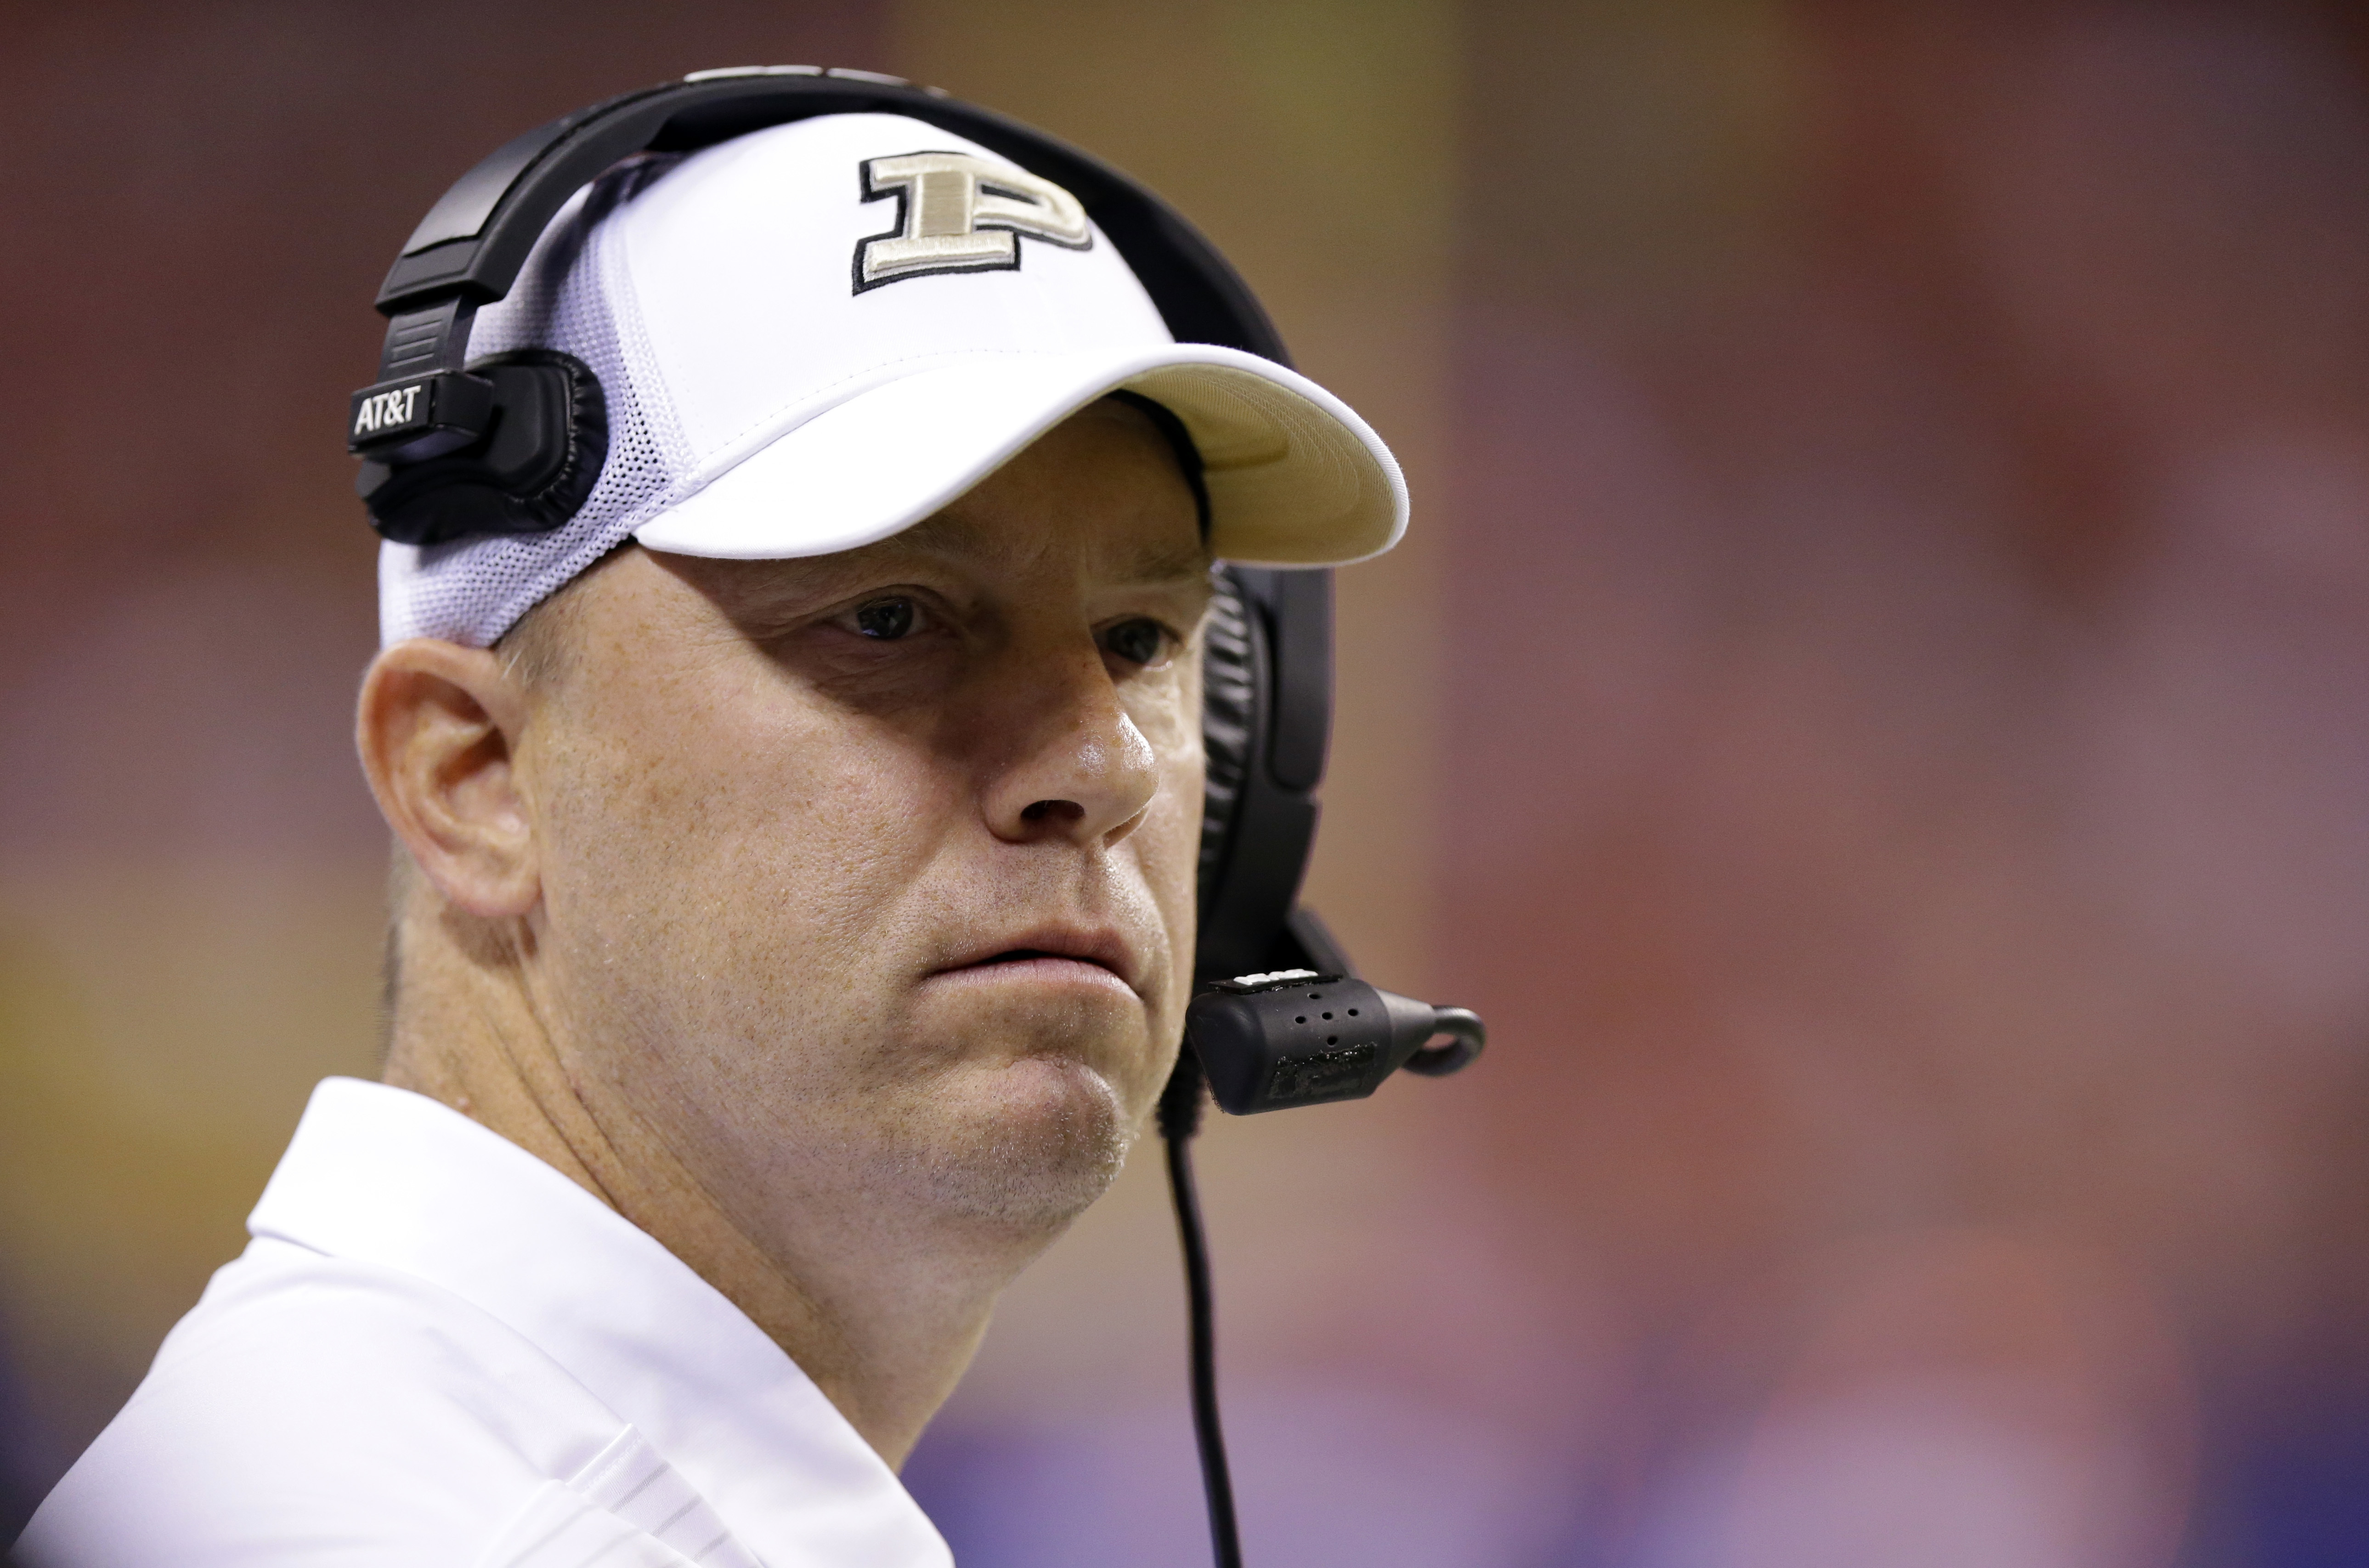 A second positive coronavirus test will keep Purdue football coach Jeff Brohm off the sideline this weekend.